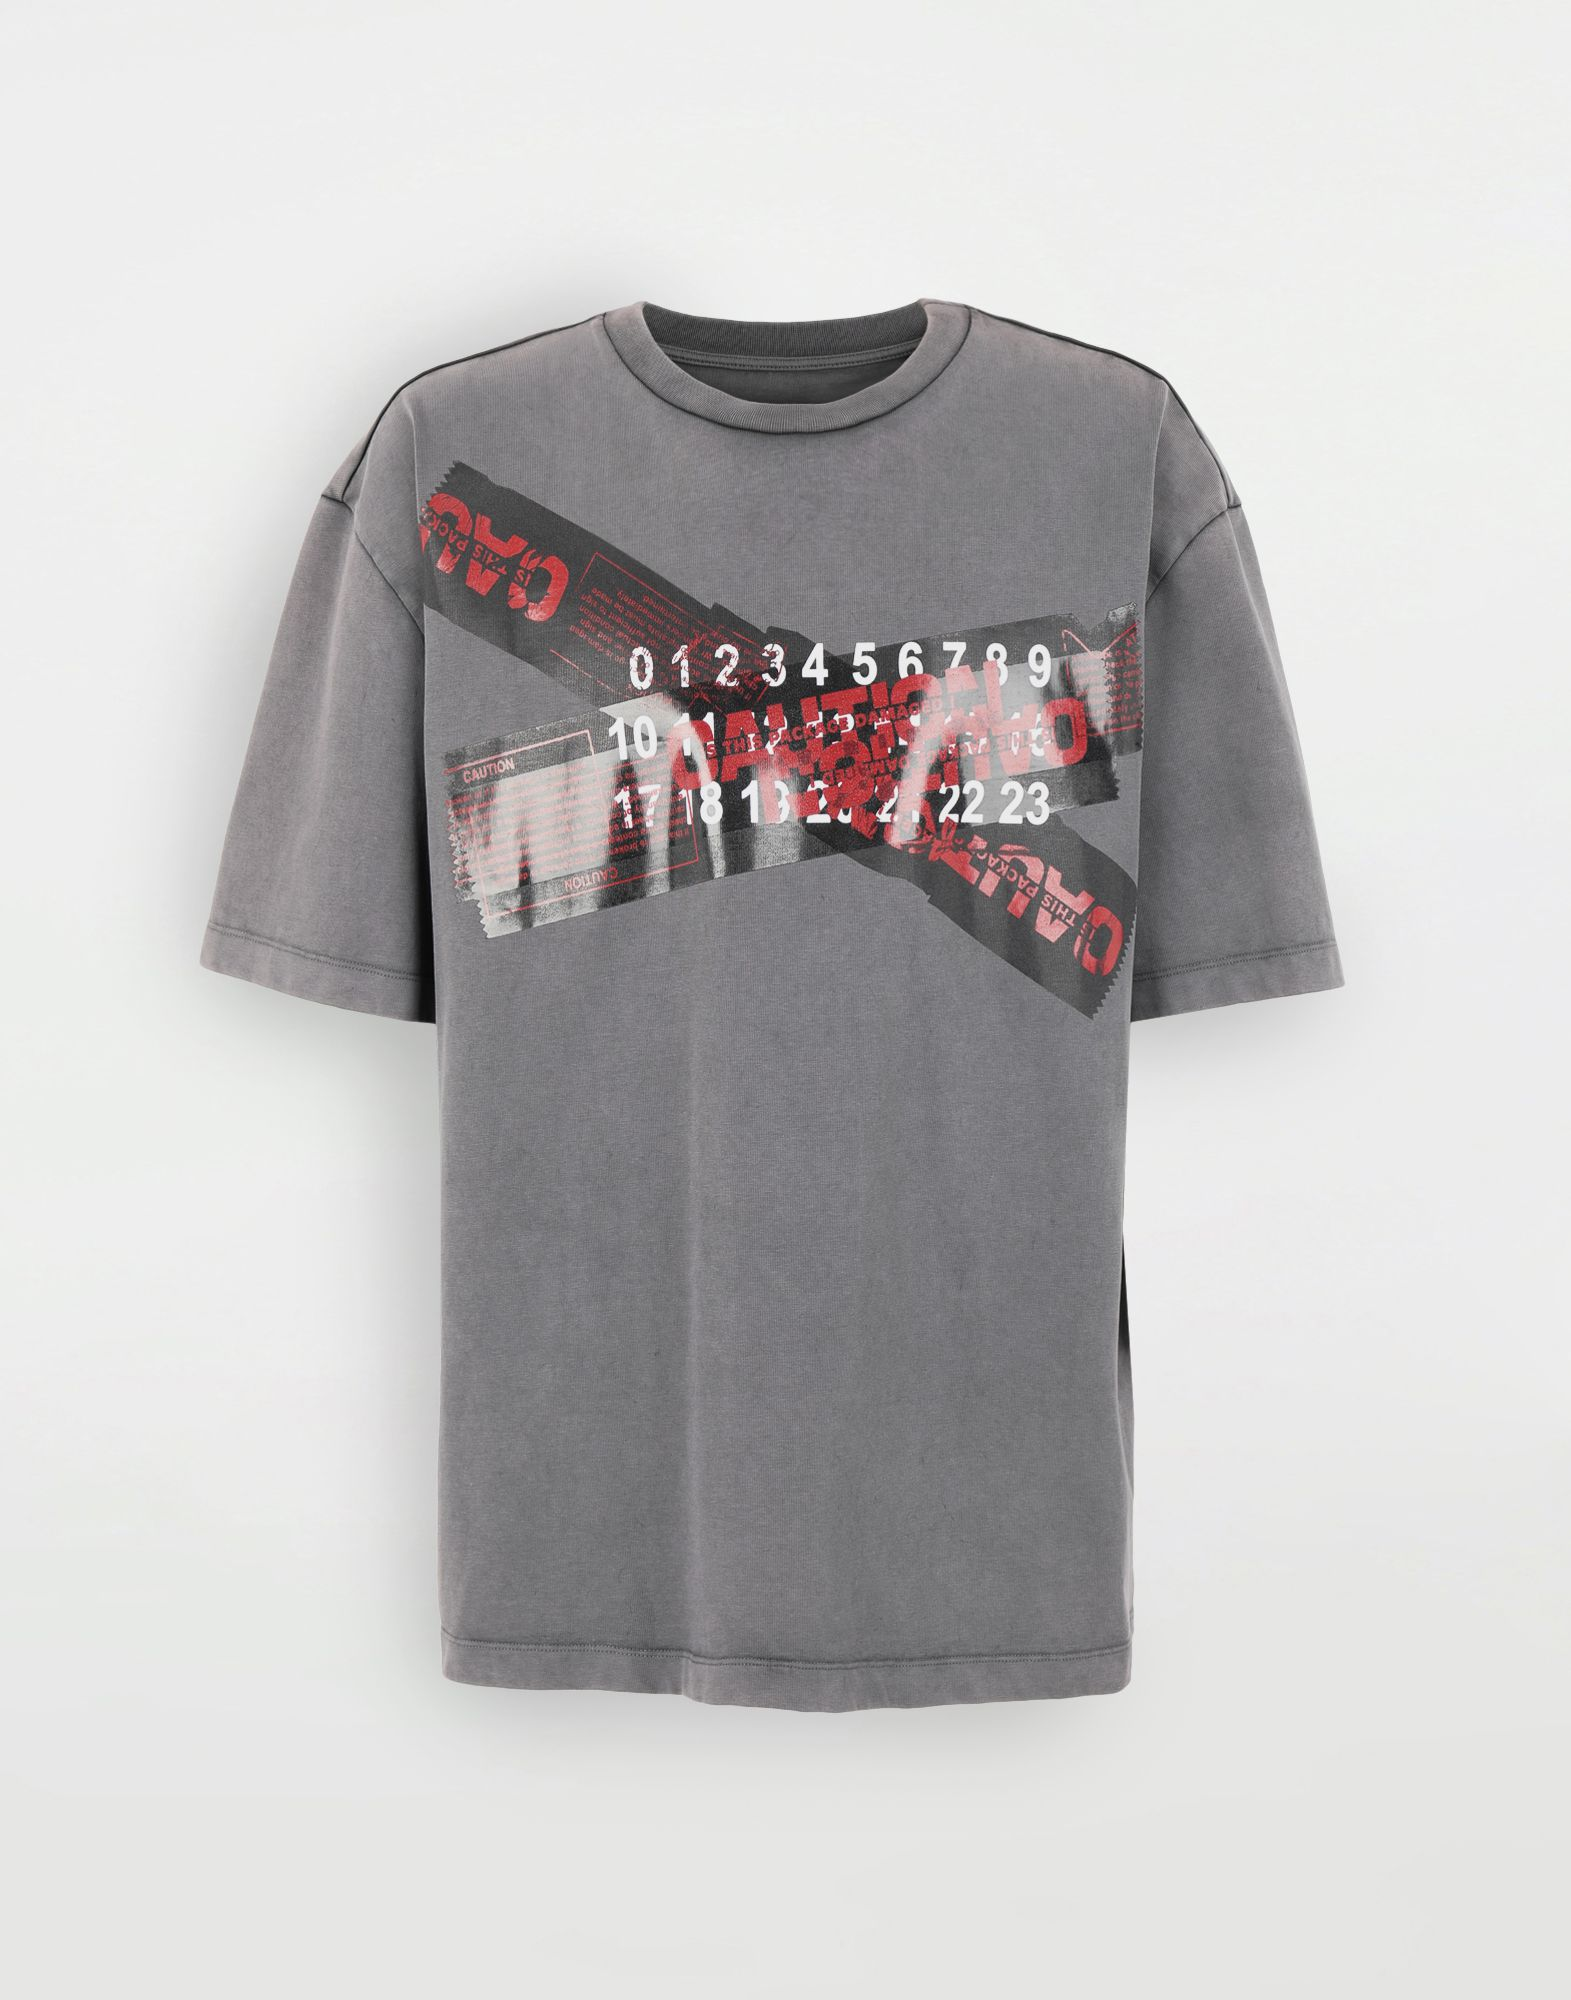 MAISON MARGIELA 'Caution' T-shirt Short sleeve t-shirt Man f